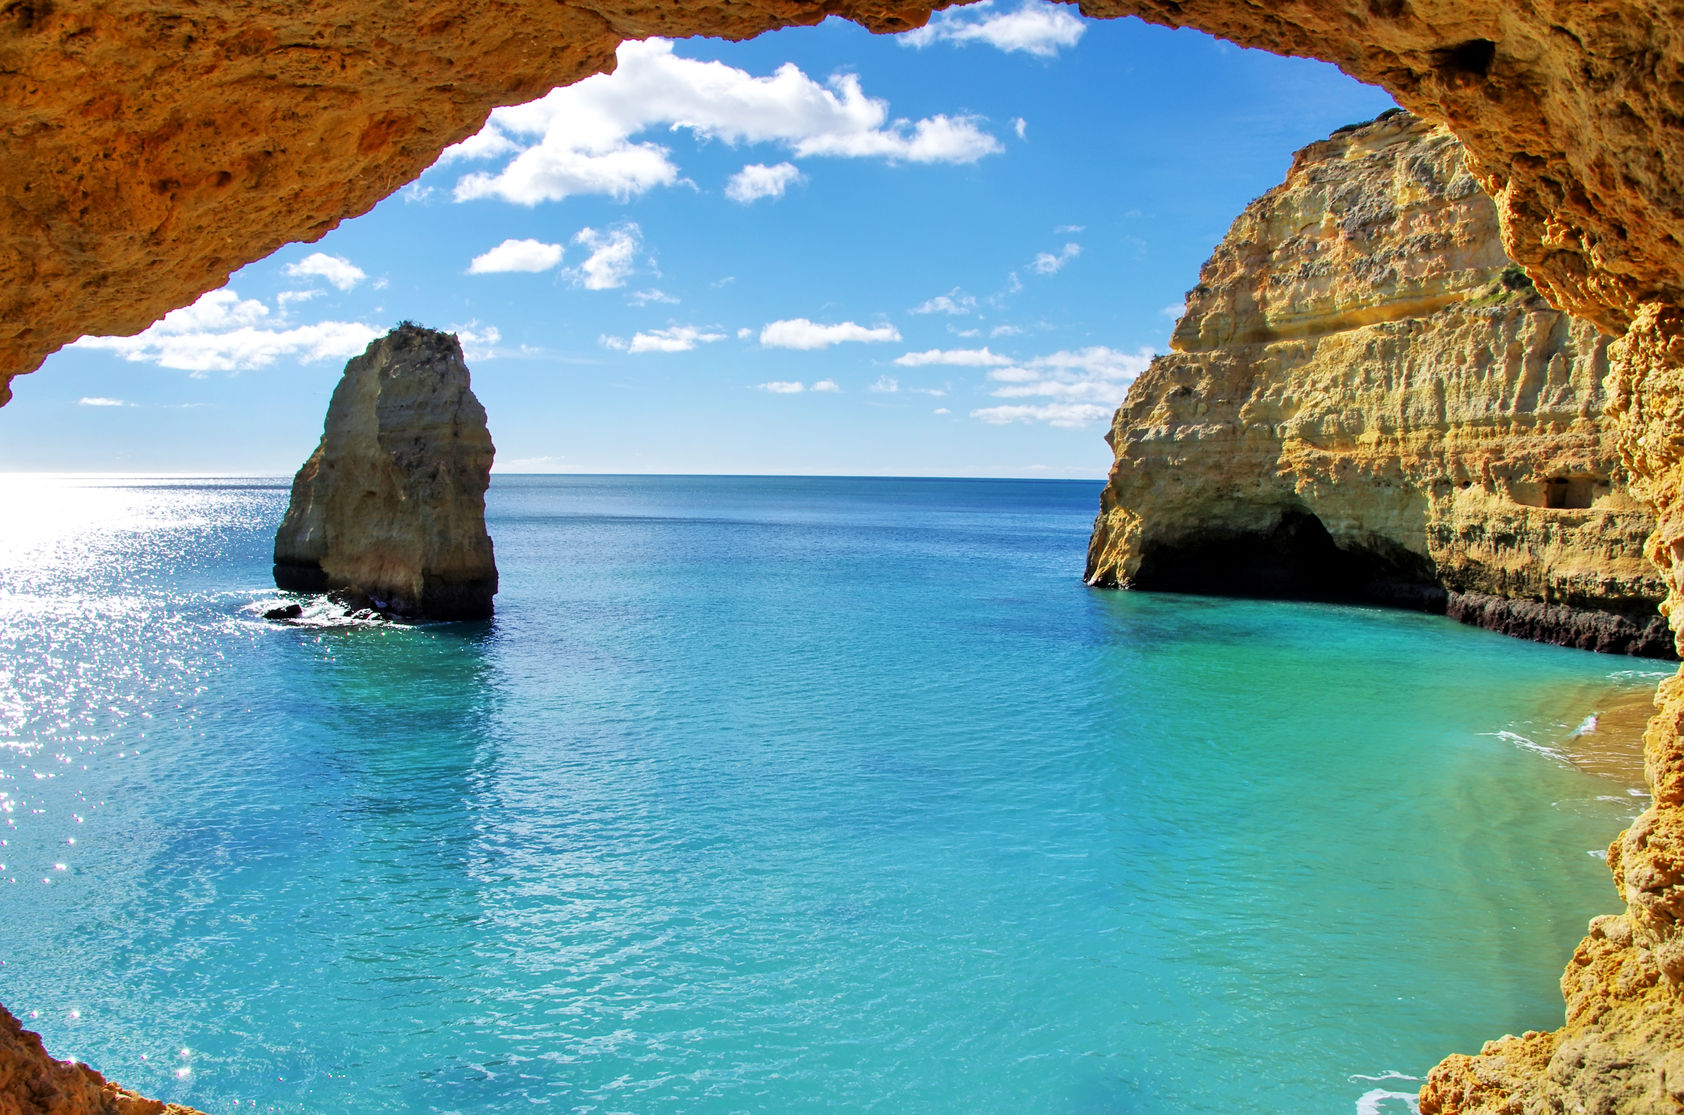 26040330-rock-formations-on-the-algarve-coast-portugal